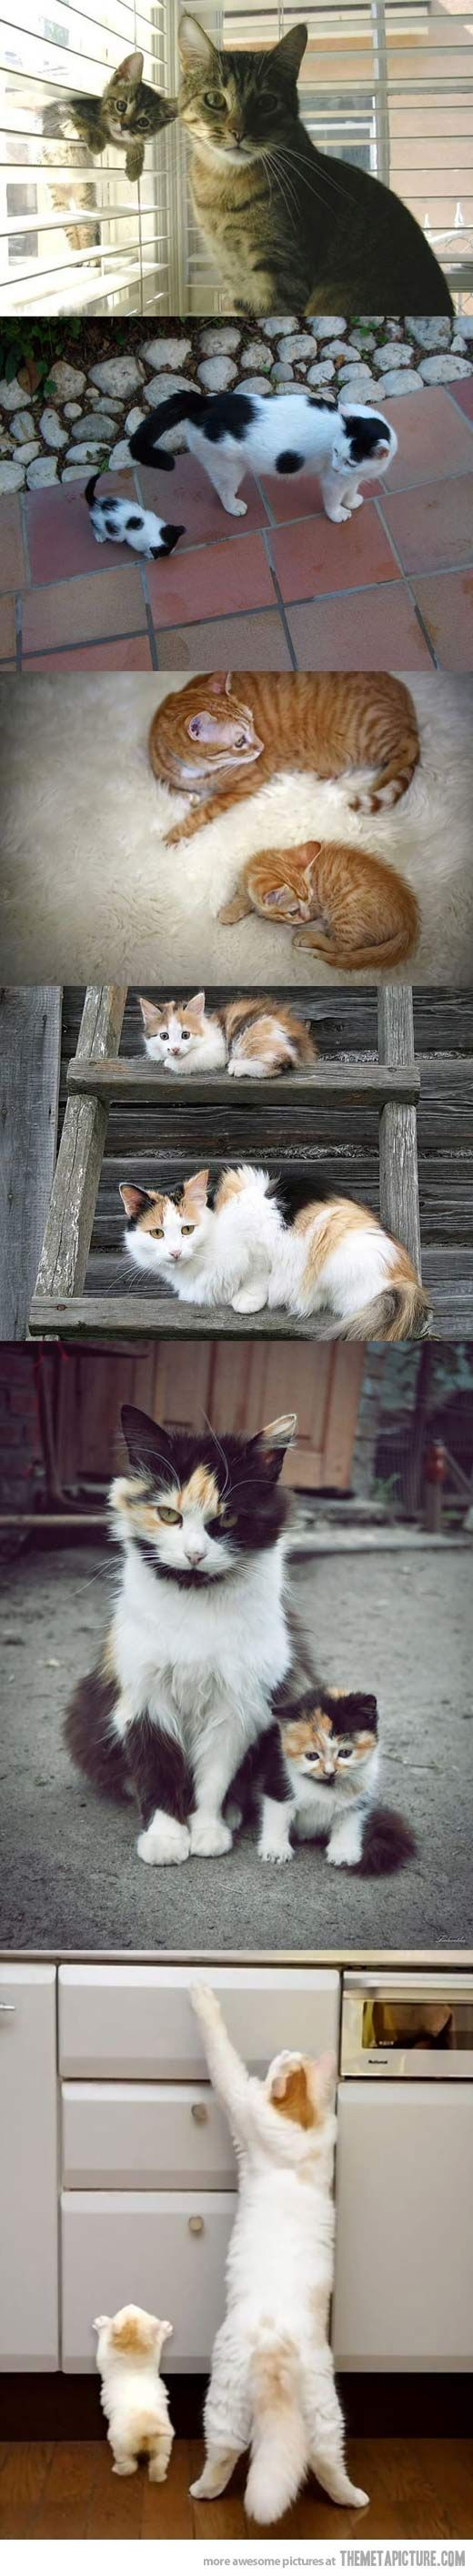 Kittens with look-alike parents - [someone else's caption]